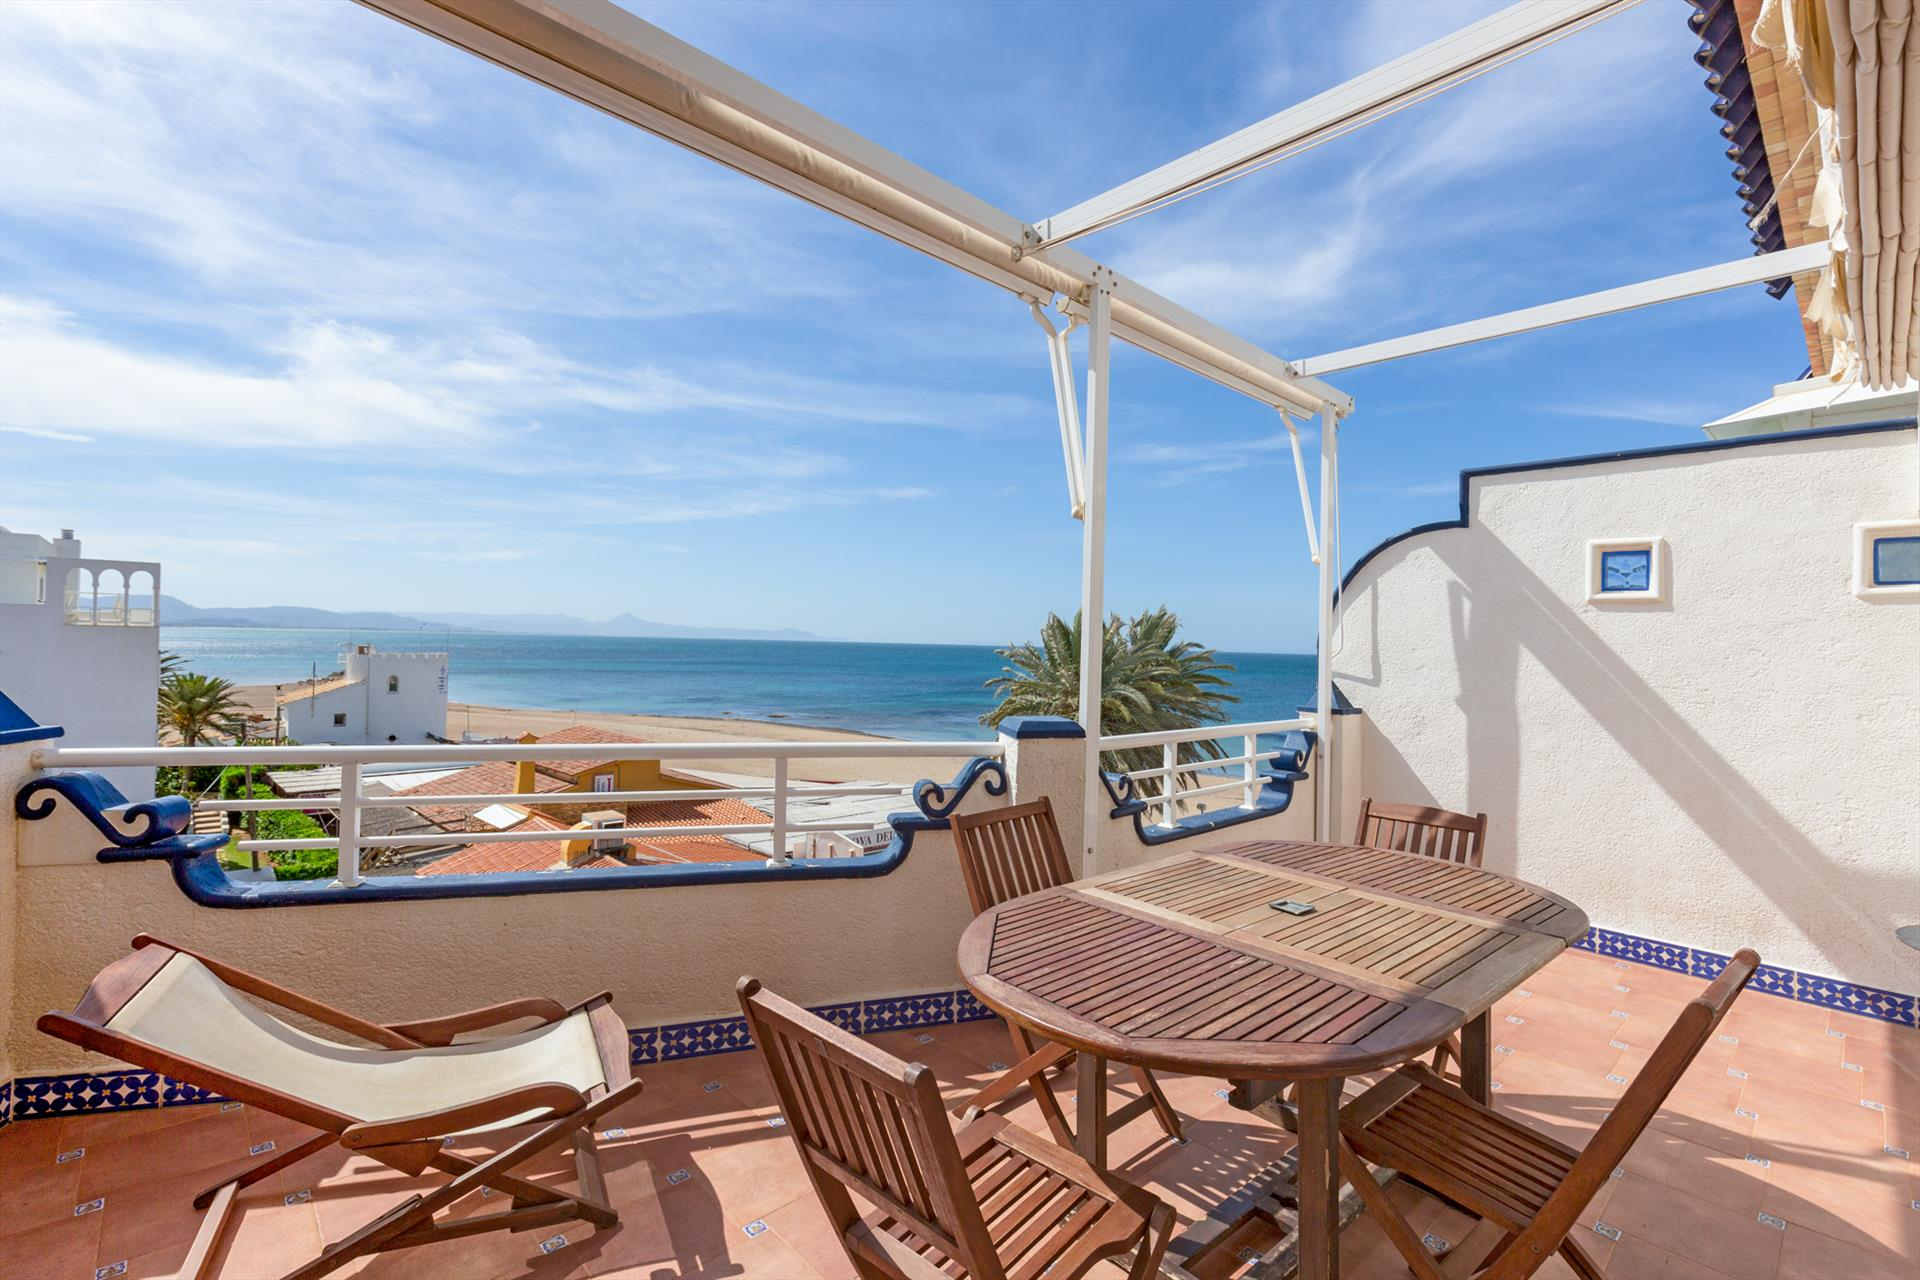 AT2201 Impresionantes Vistas desde la Gran Terraza, Wonderful and cheerful holiday house in Denia, on the Costa Blanca, Spain  with communal pool for 6 persons.....